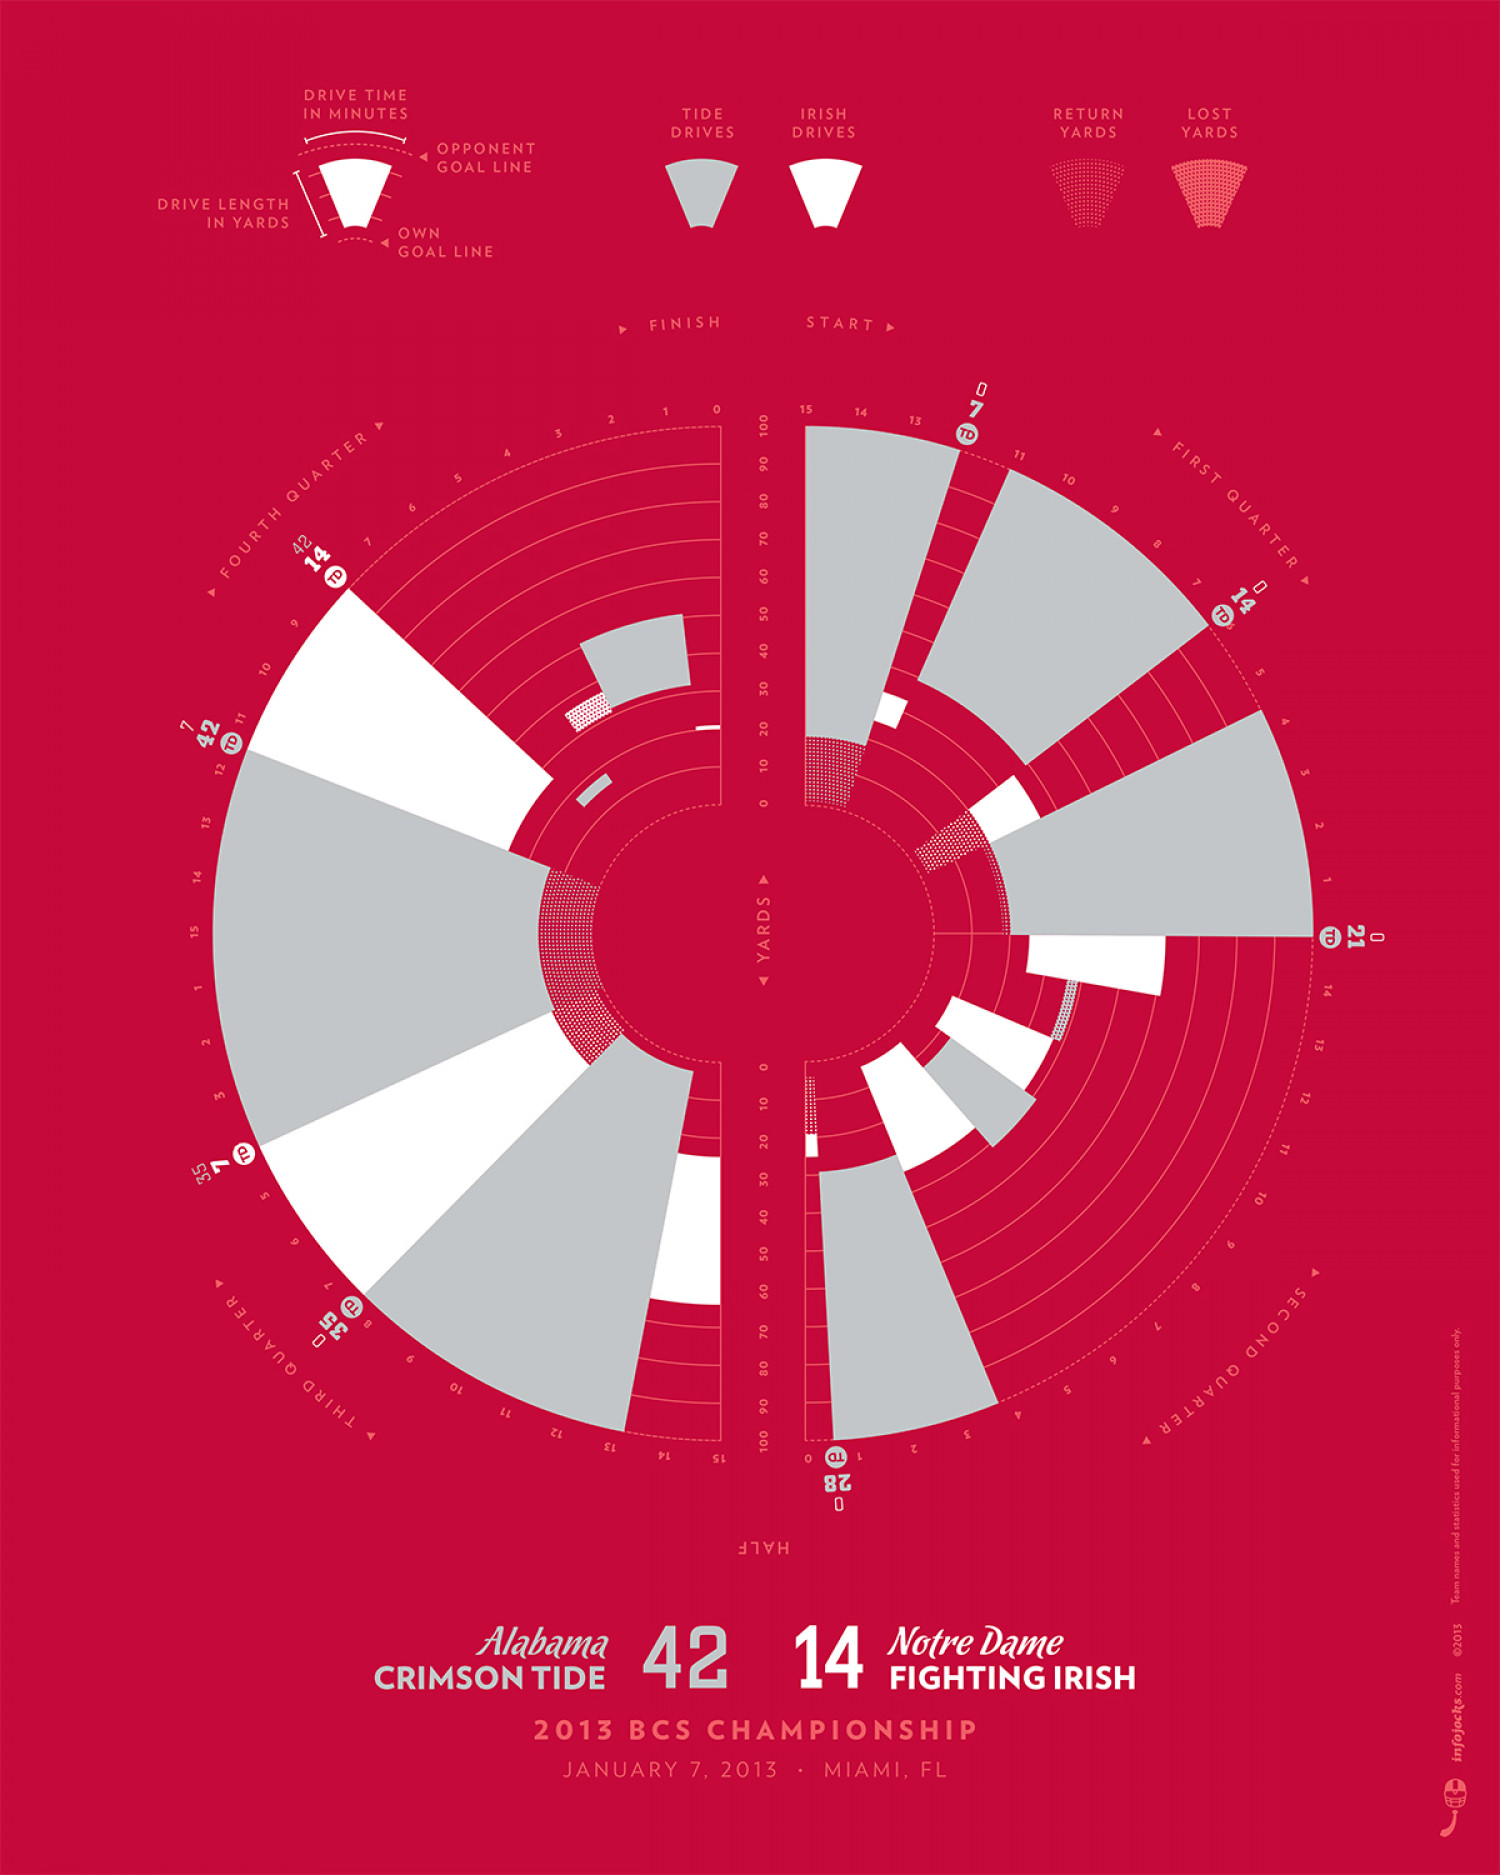 2013 Alabama Crimson Tide Graphic Boxscore Infographic